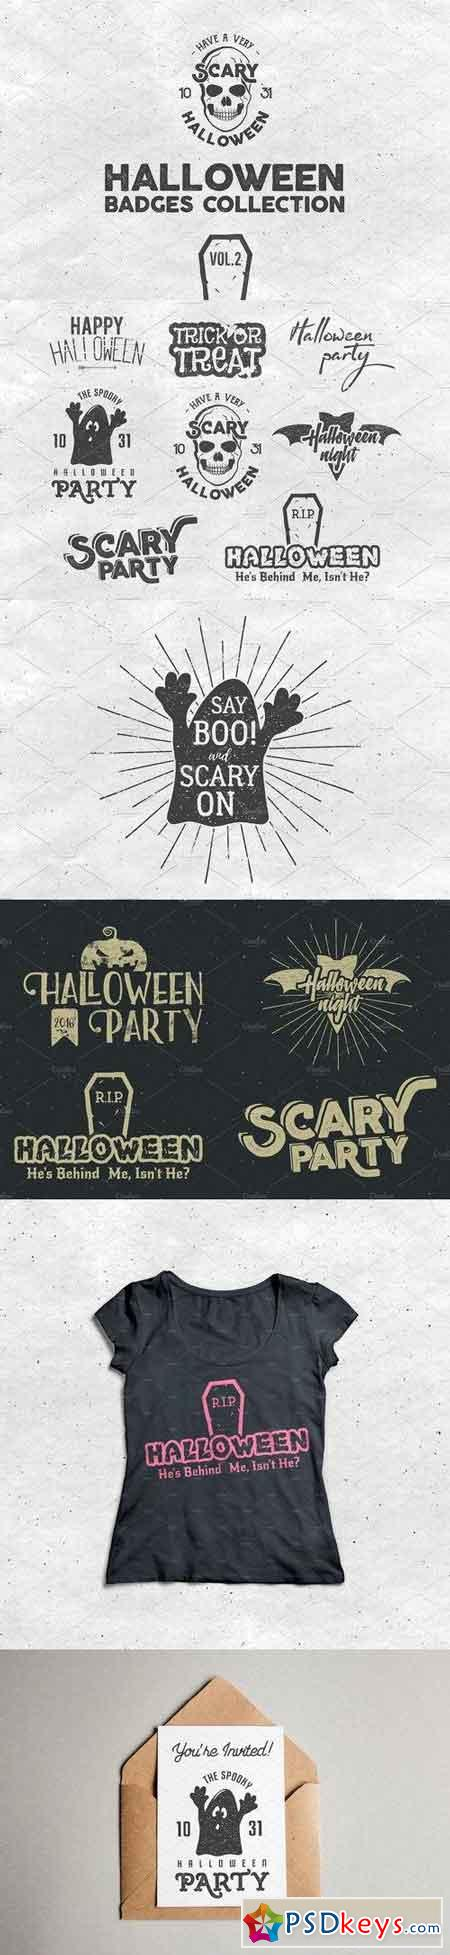 Halloween Badges Set. Vol.2 918373